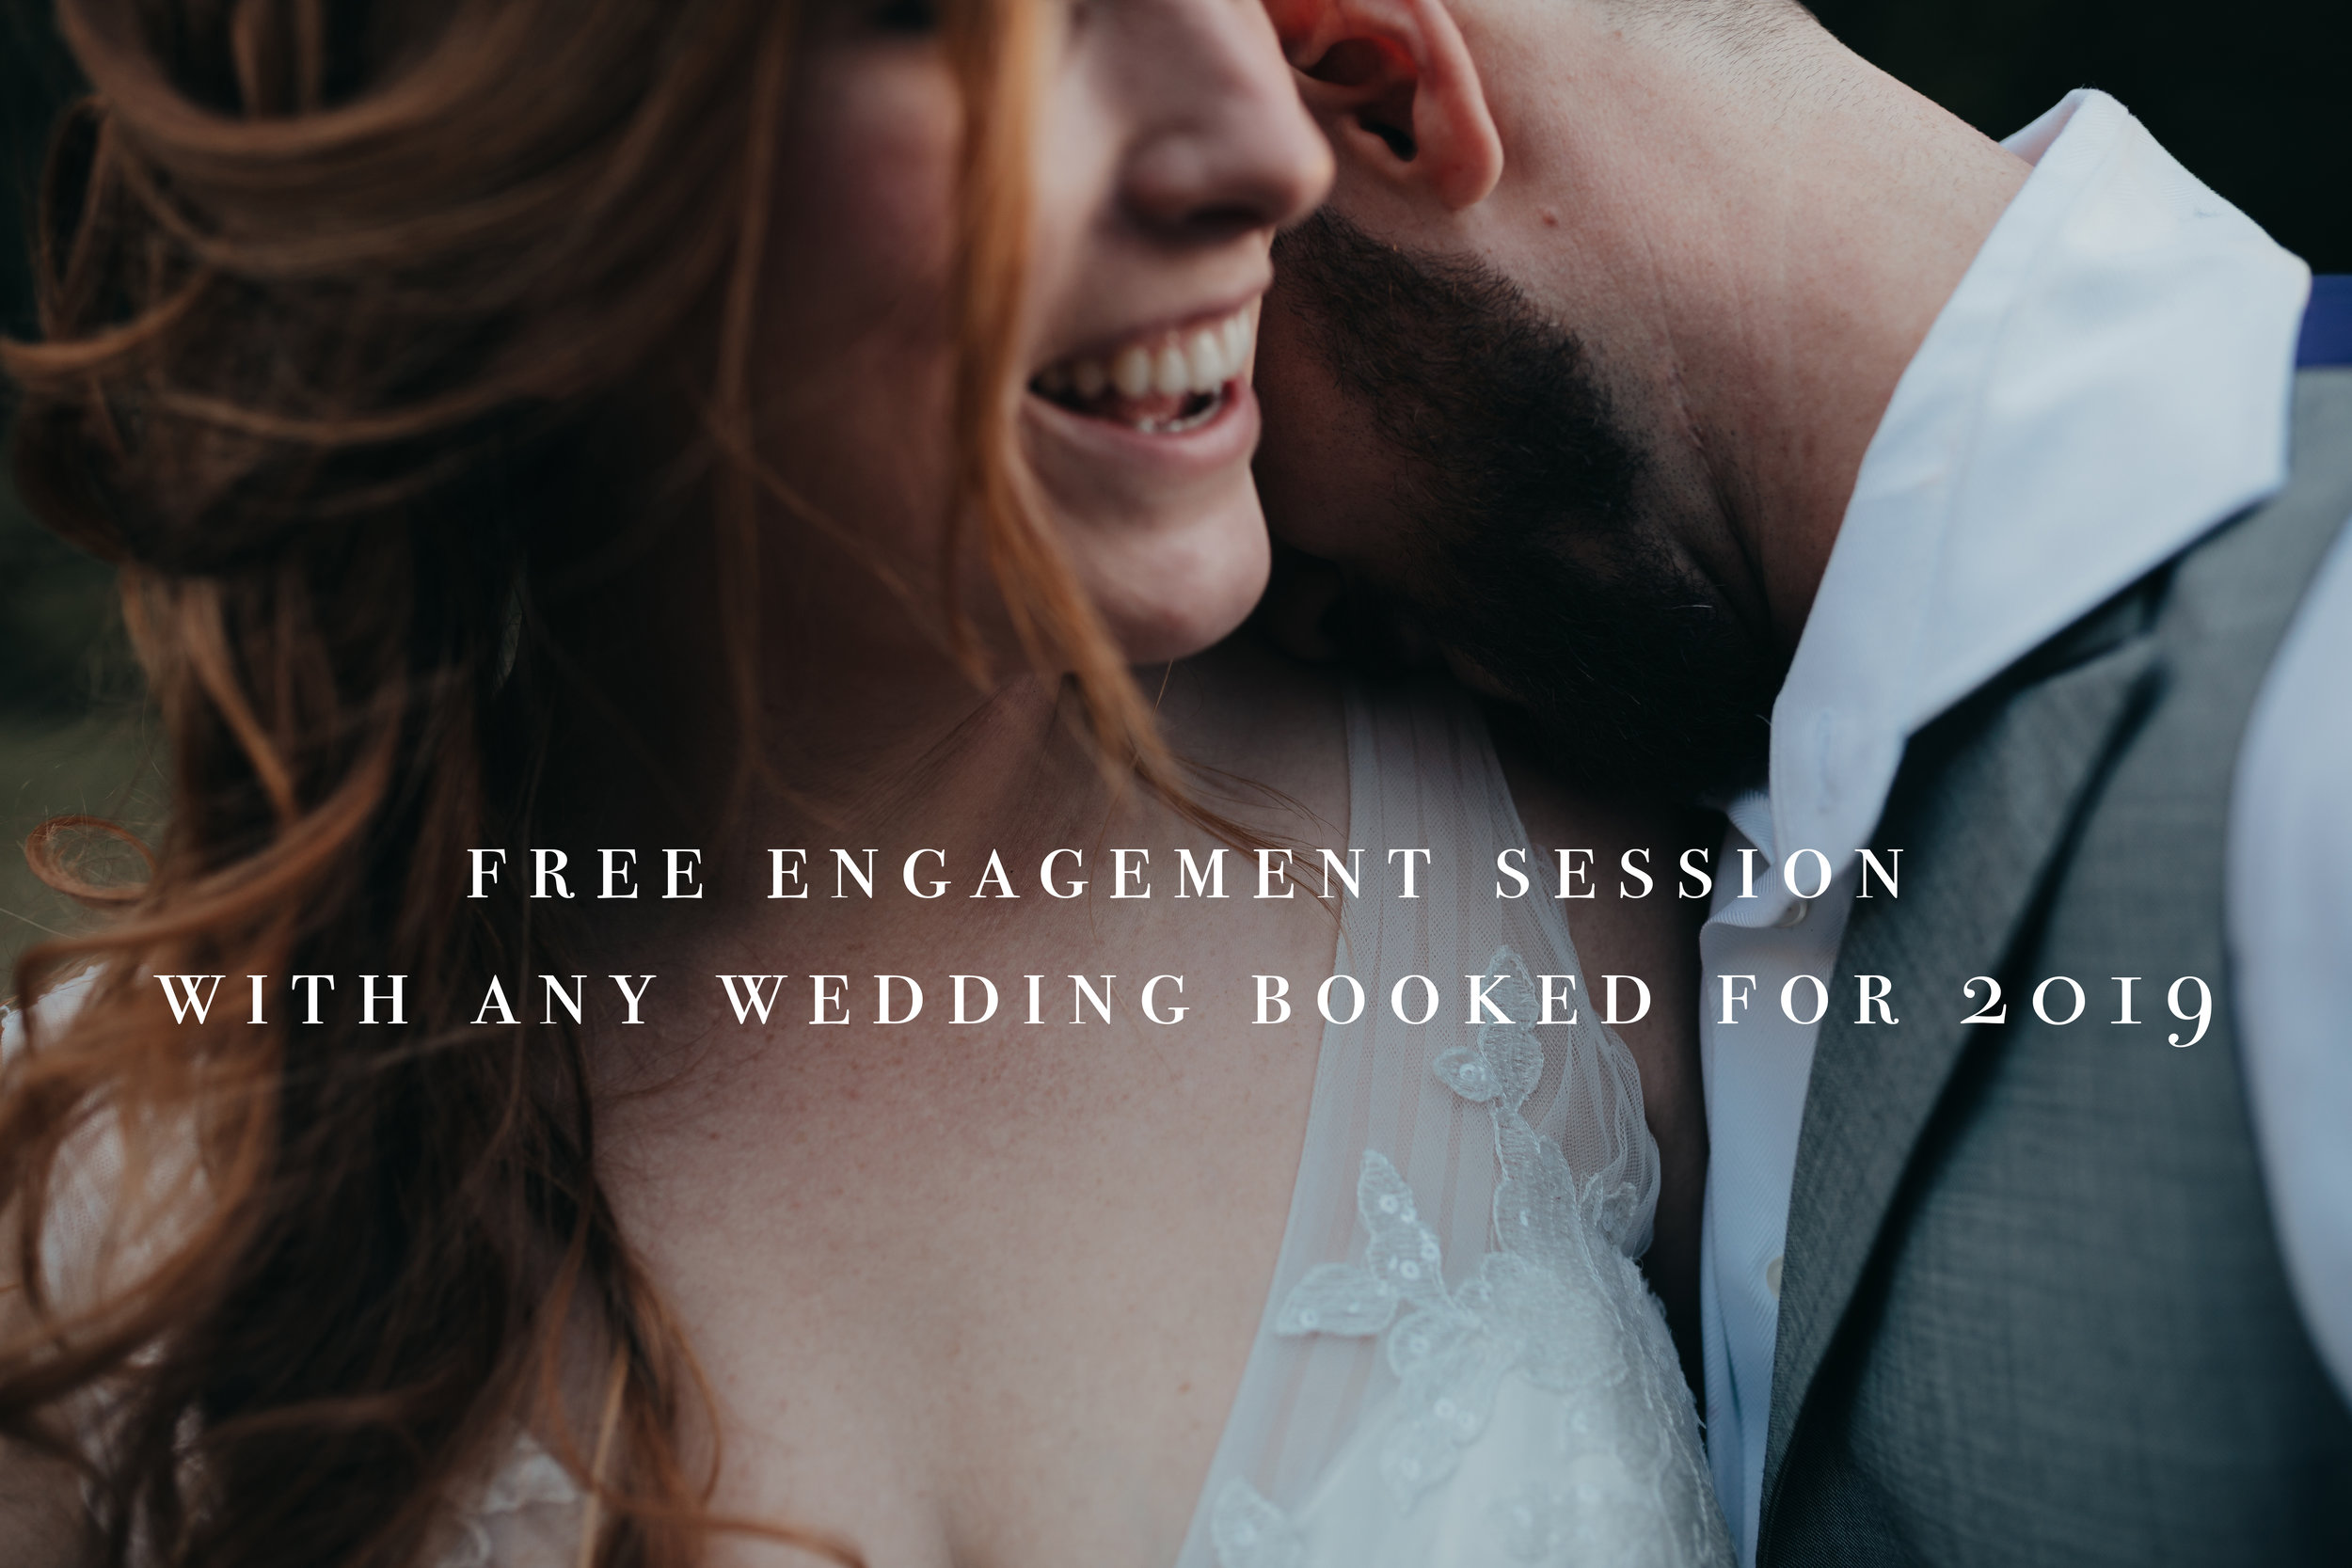 Free Engagement Session with any wedding booked for 2019